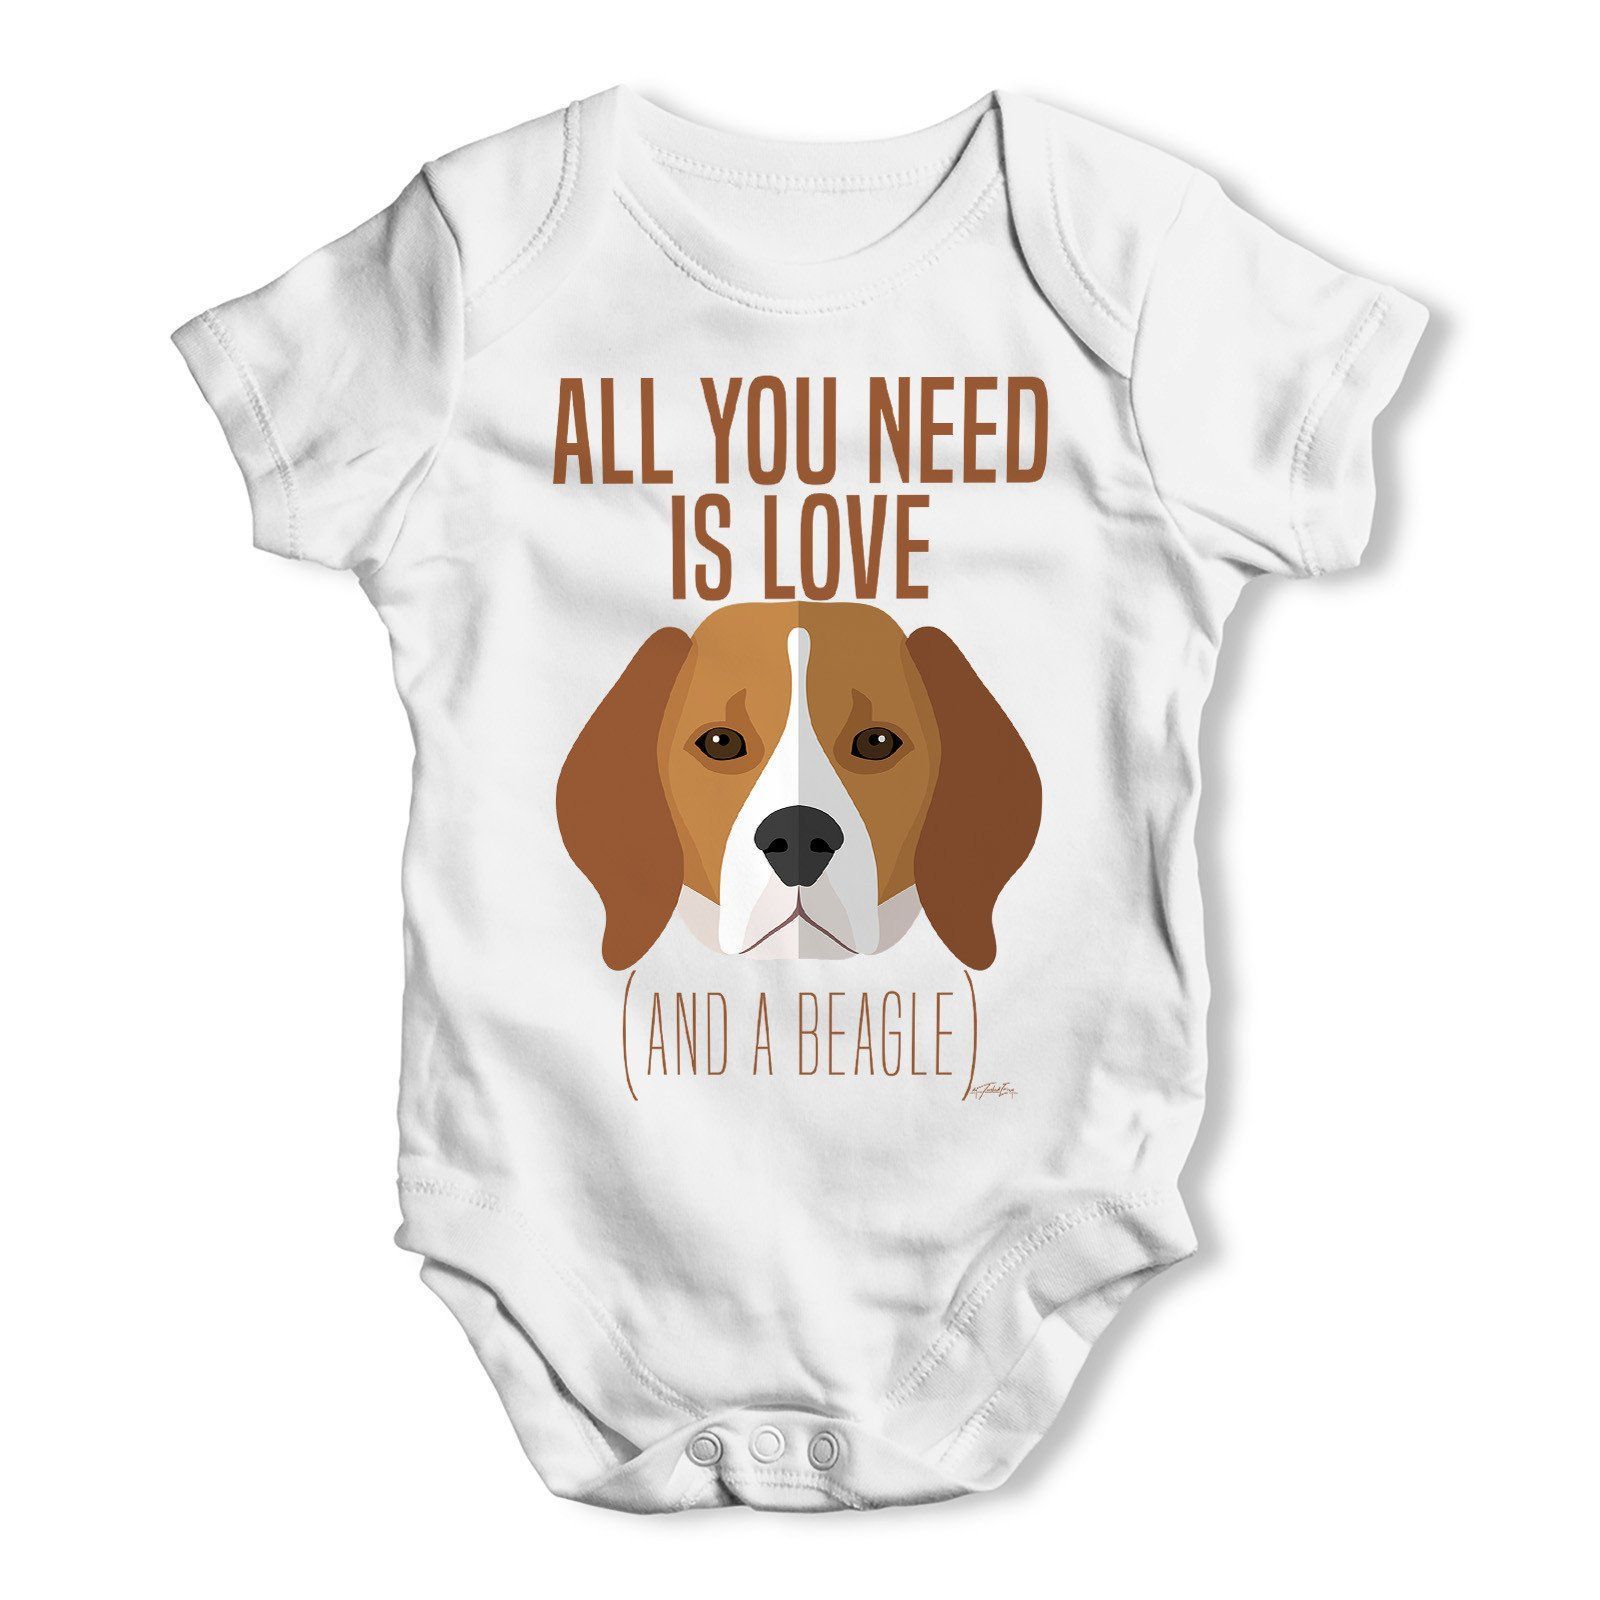 All You Need Is A Beagle Baby Grow Bodysuit Baby Grows Funny